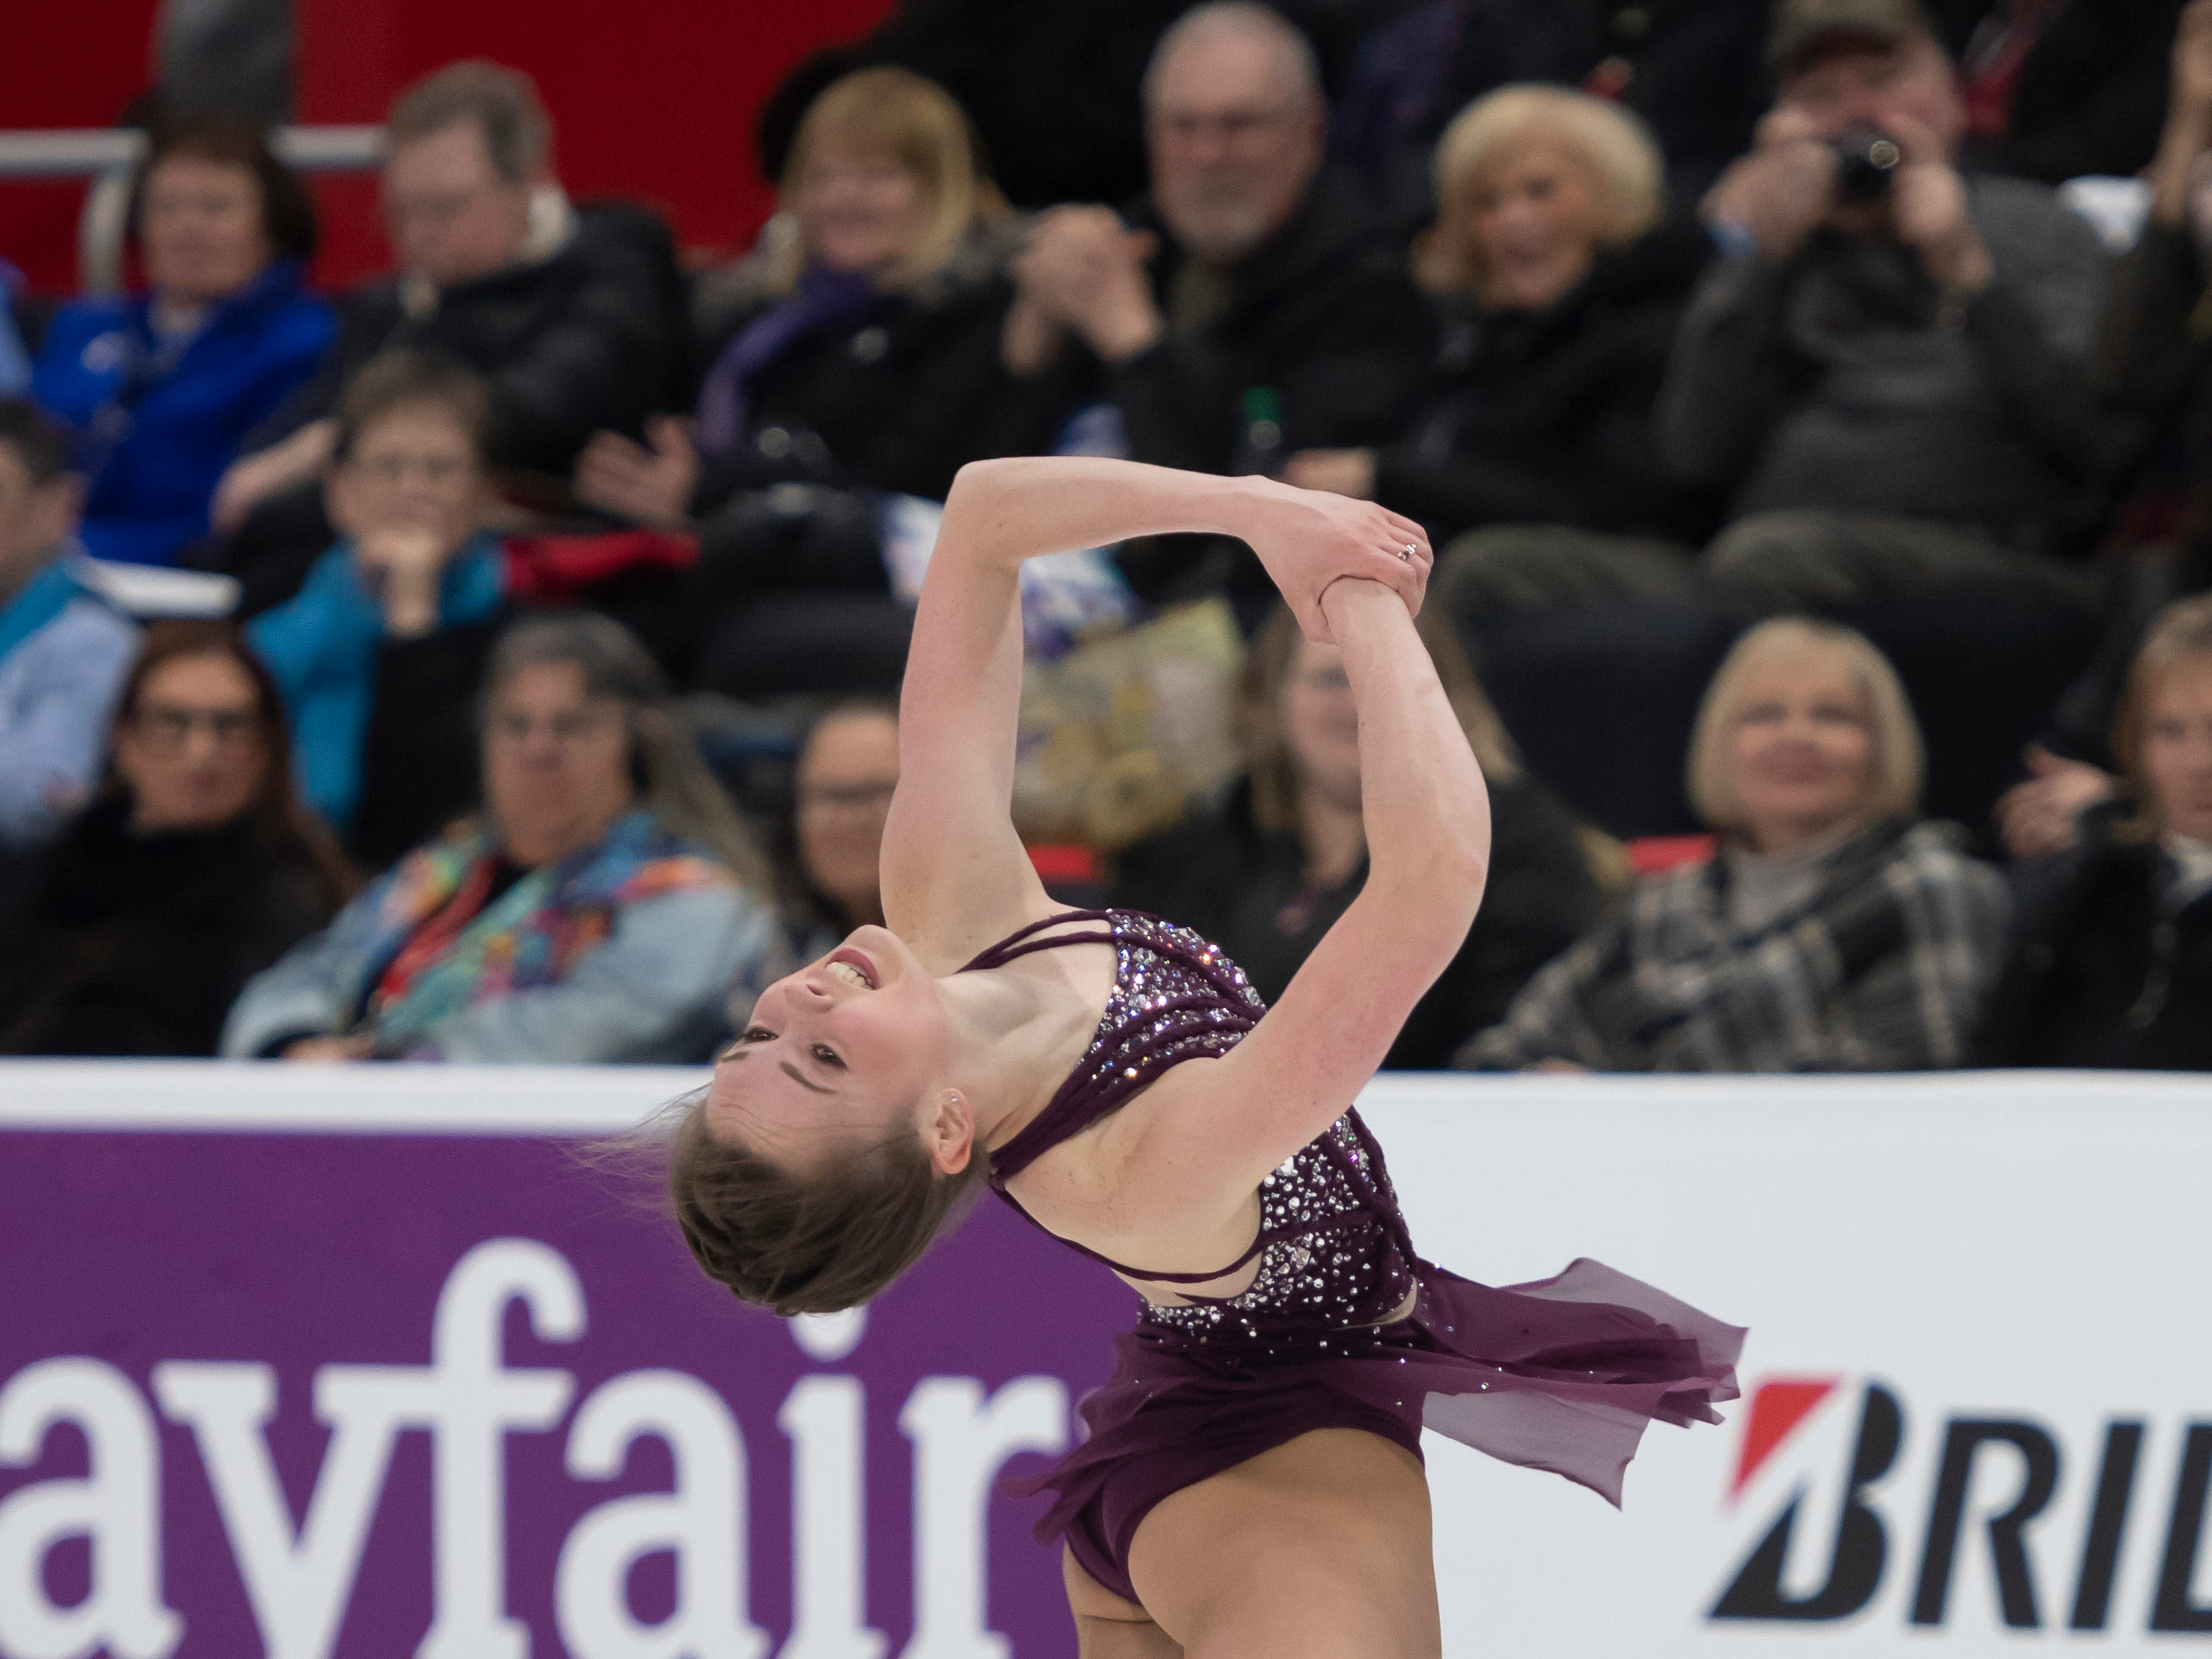 Mariah Bell competes in the ladies short program.